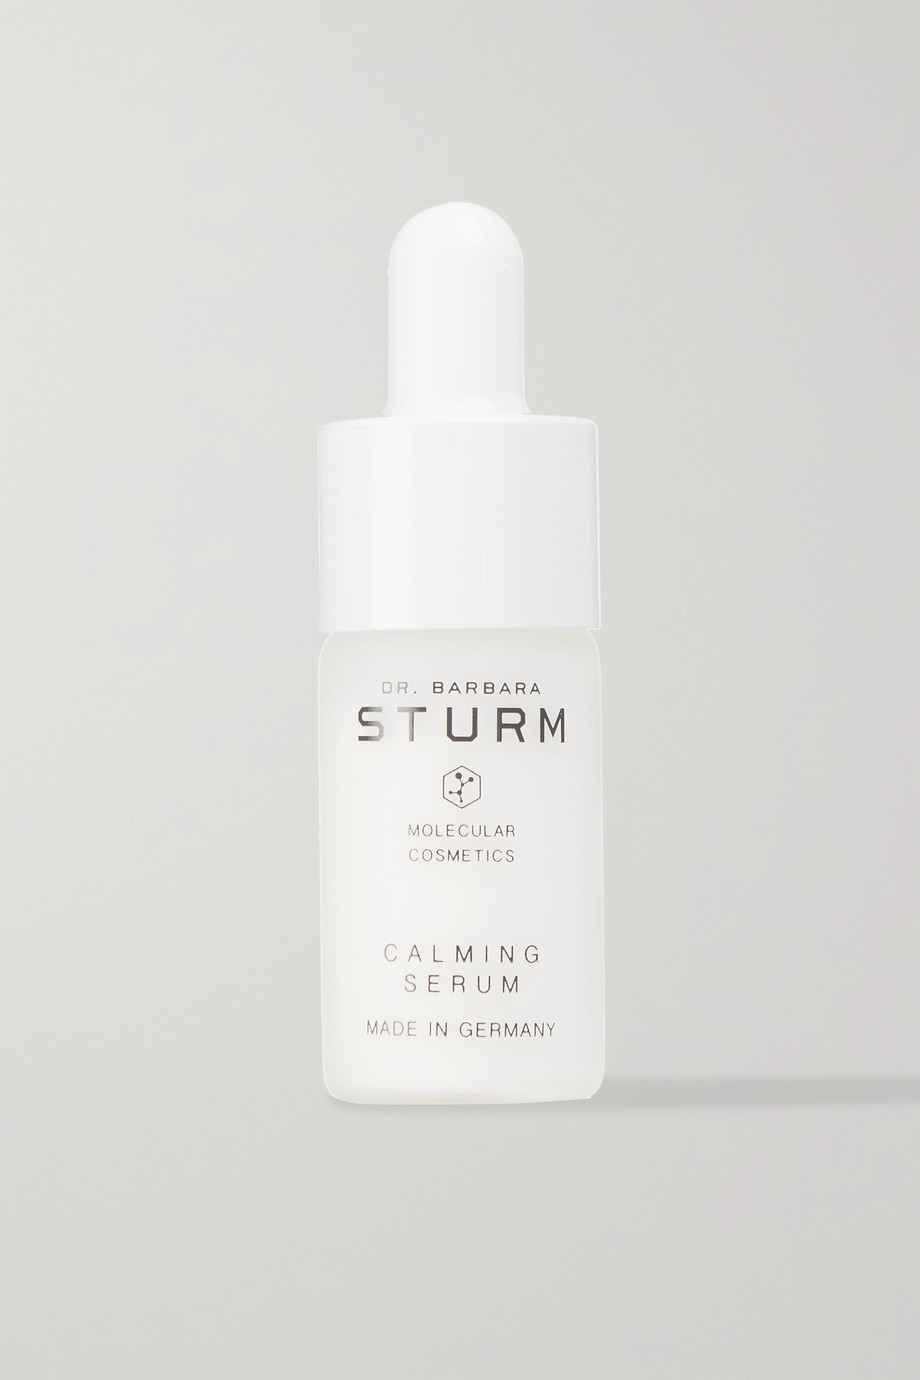 DR. BARBARA STURM Mini Calming Serum, 10ml